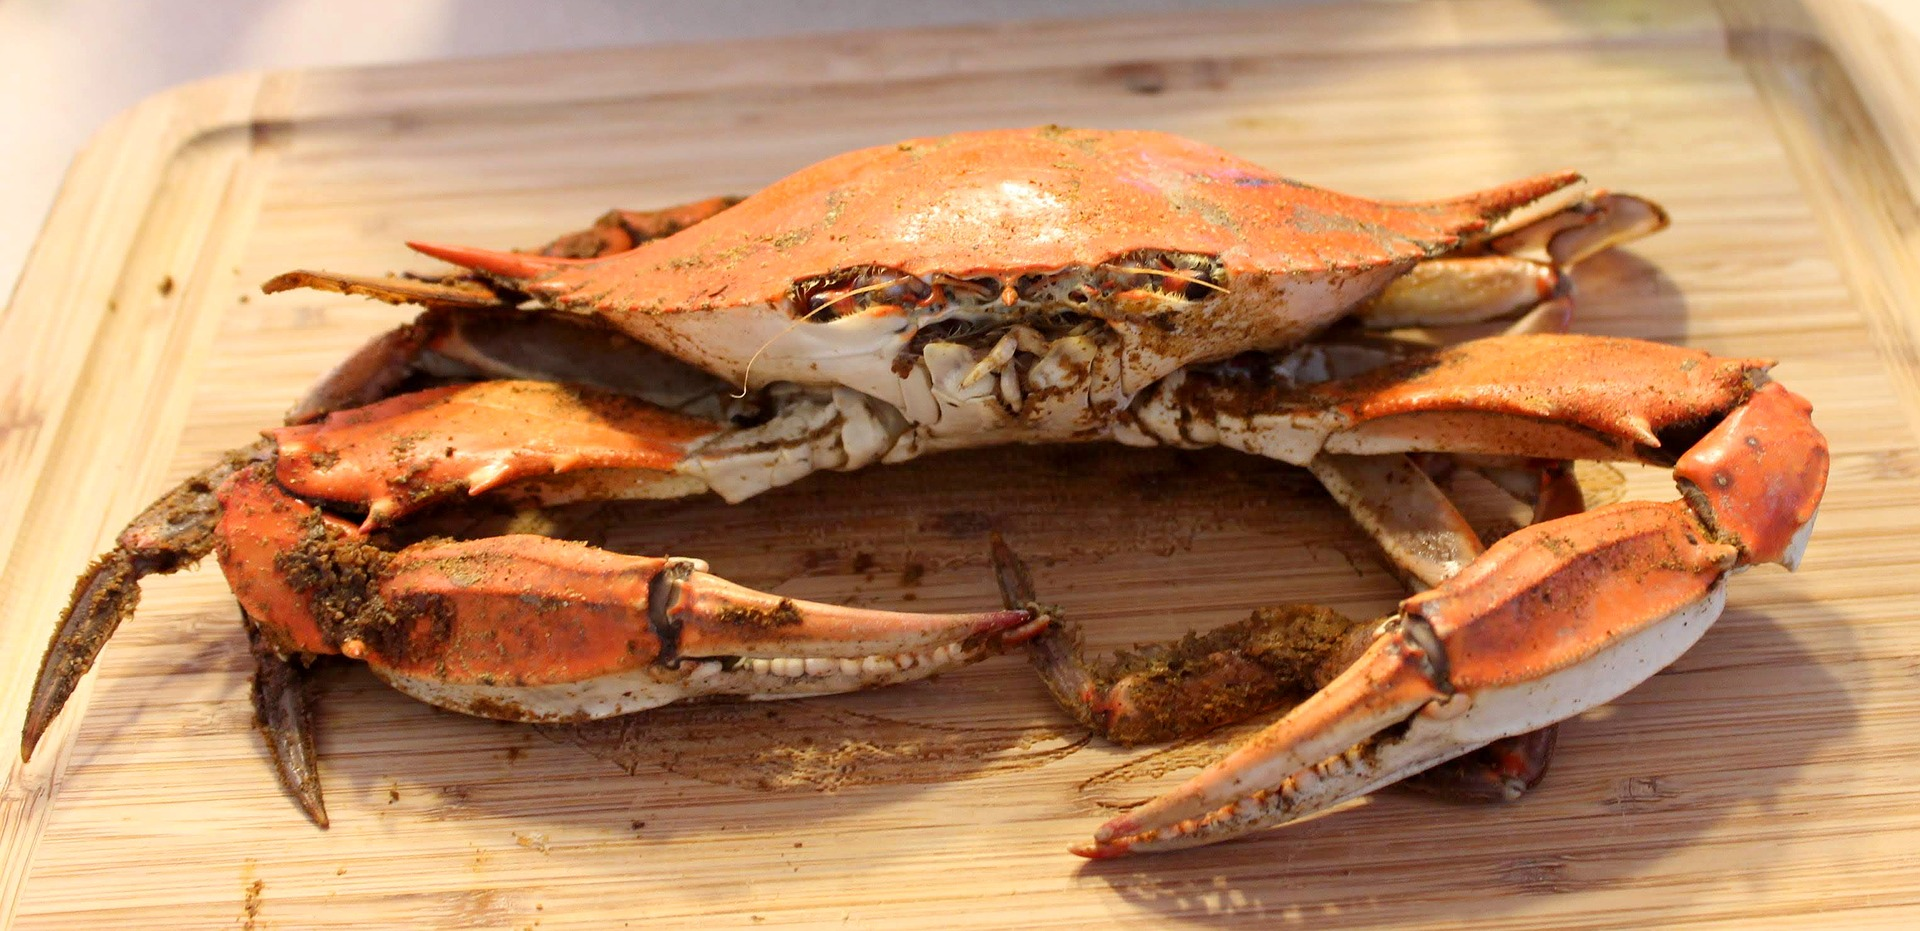 Maryland's Crab Industry Gets Big Boost